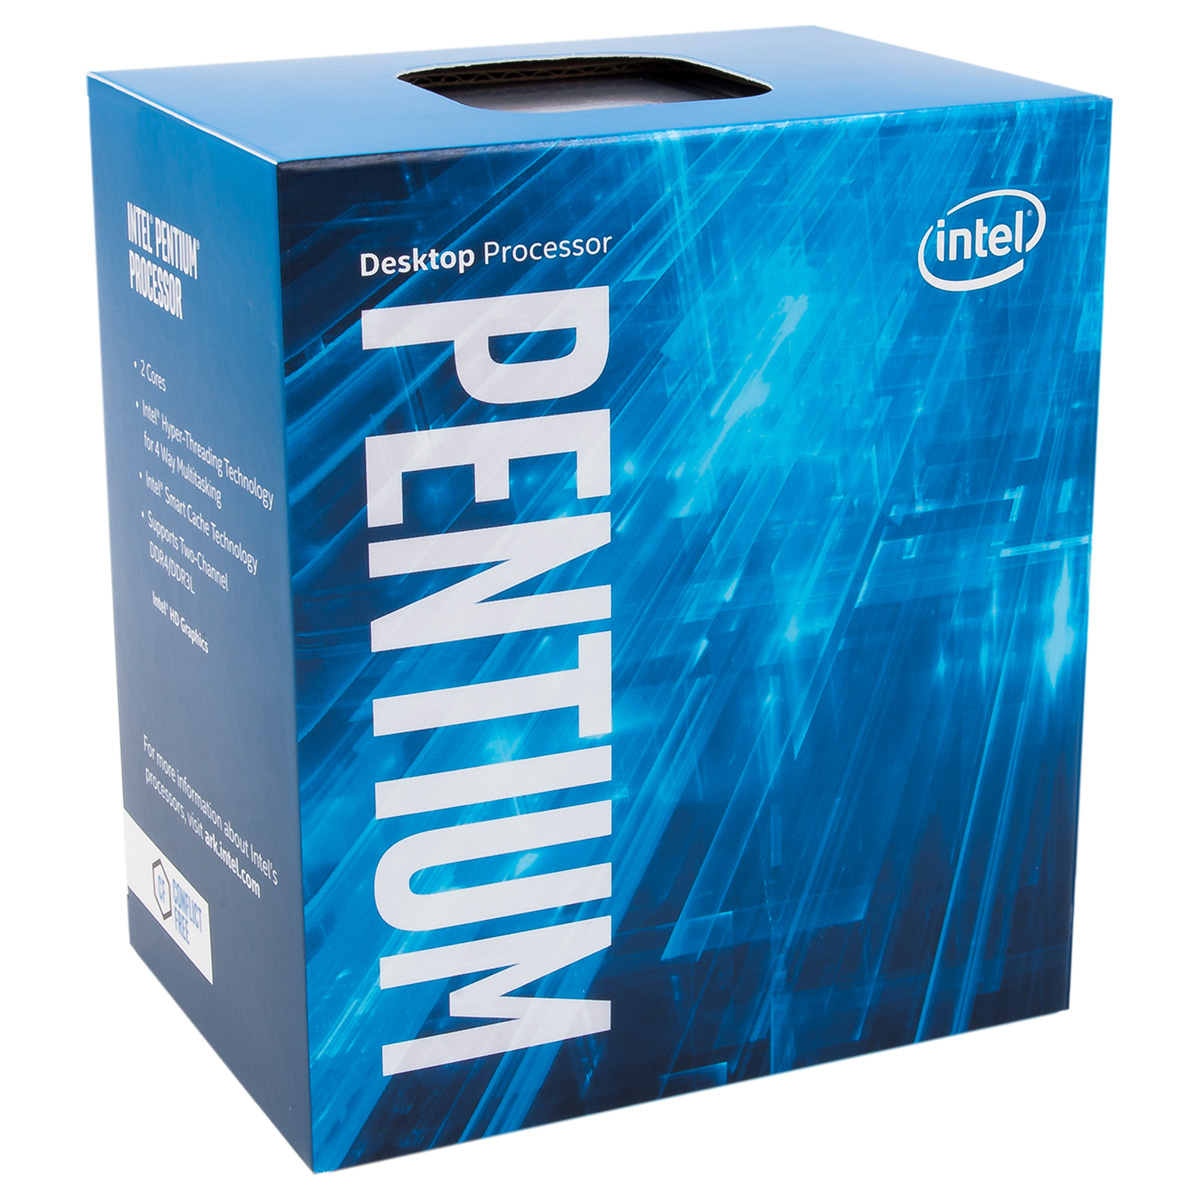 Processeur Intel Pentium G4620 (3.7 GHz) Processeur Dual Core Socket 1151 Cache L3 3 Mo Intel HD Graphics 630 0.014 micron (version boîte - garantie Intel 3 ans)